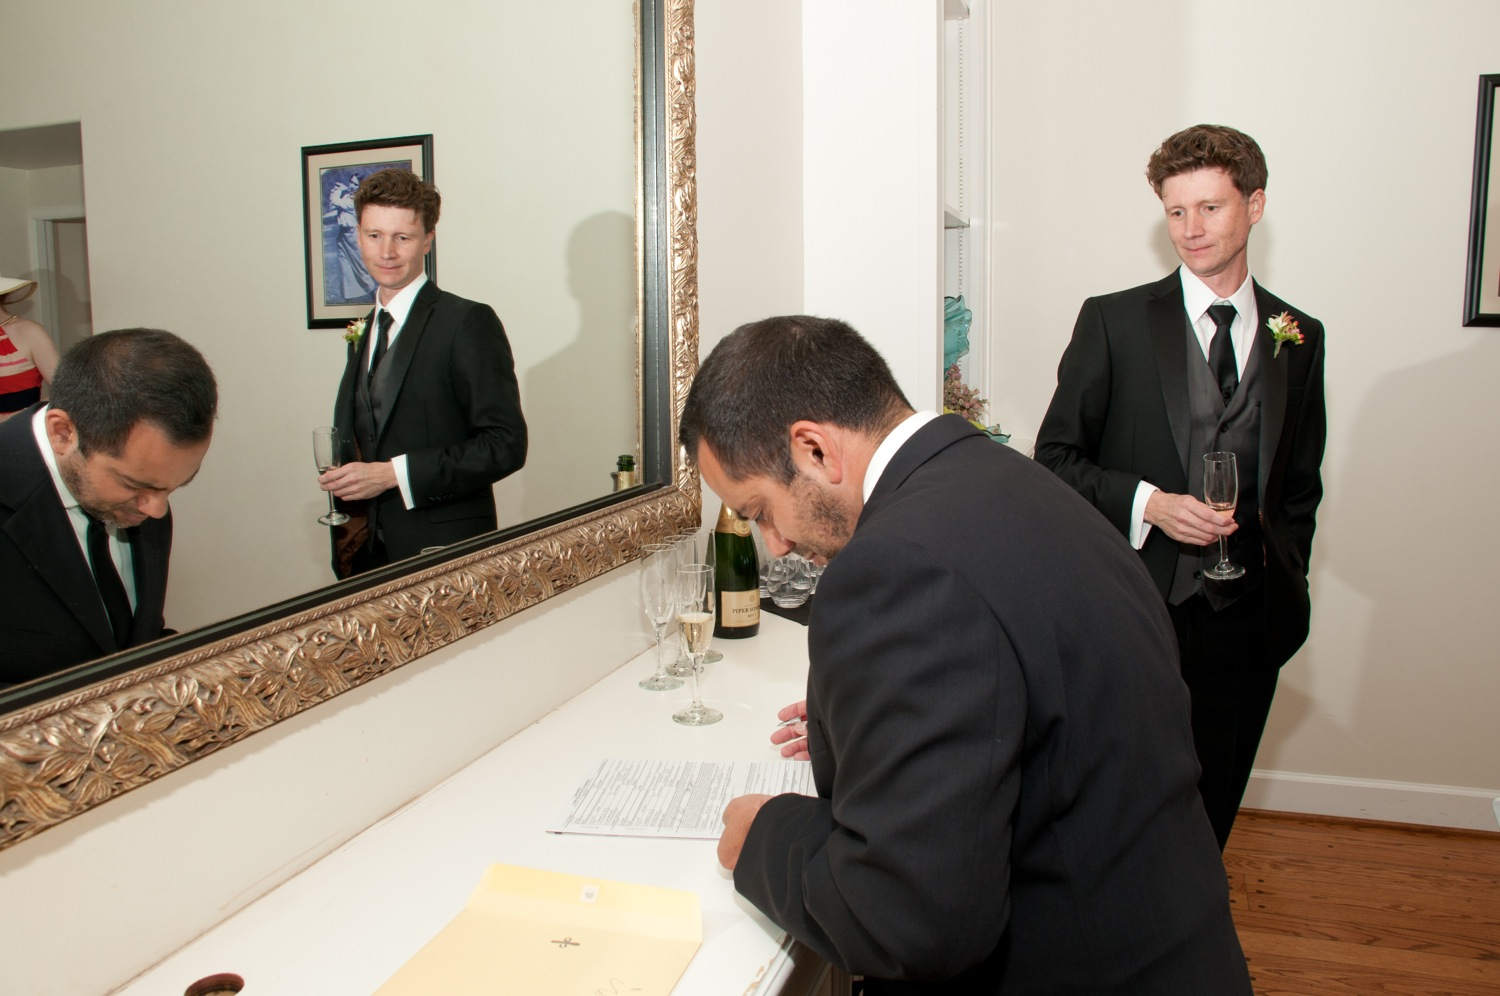 Christian prepares the marriage certificate.